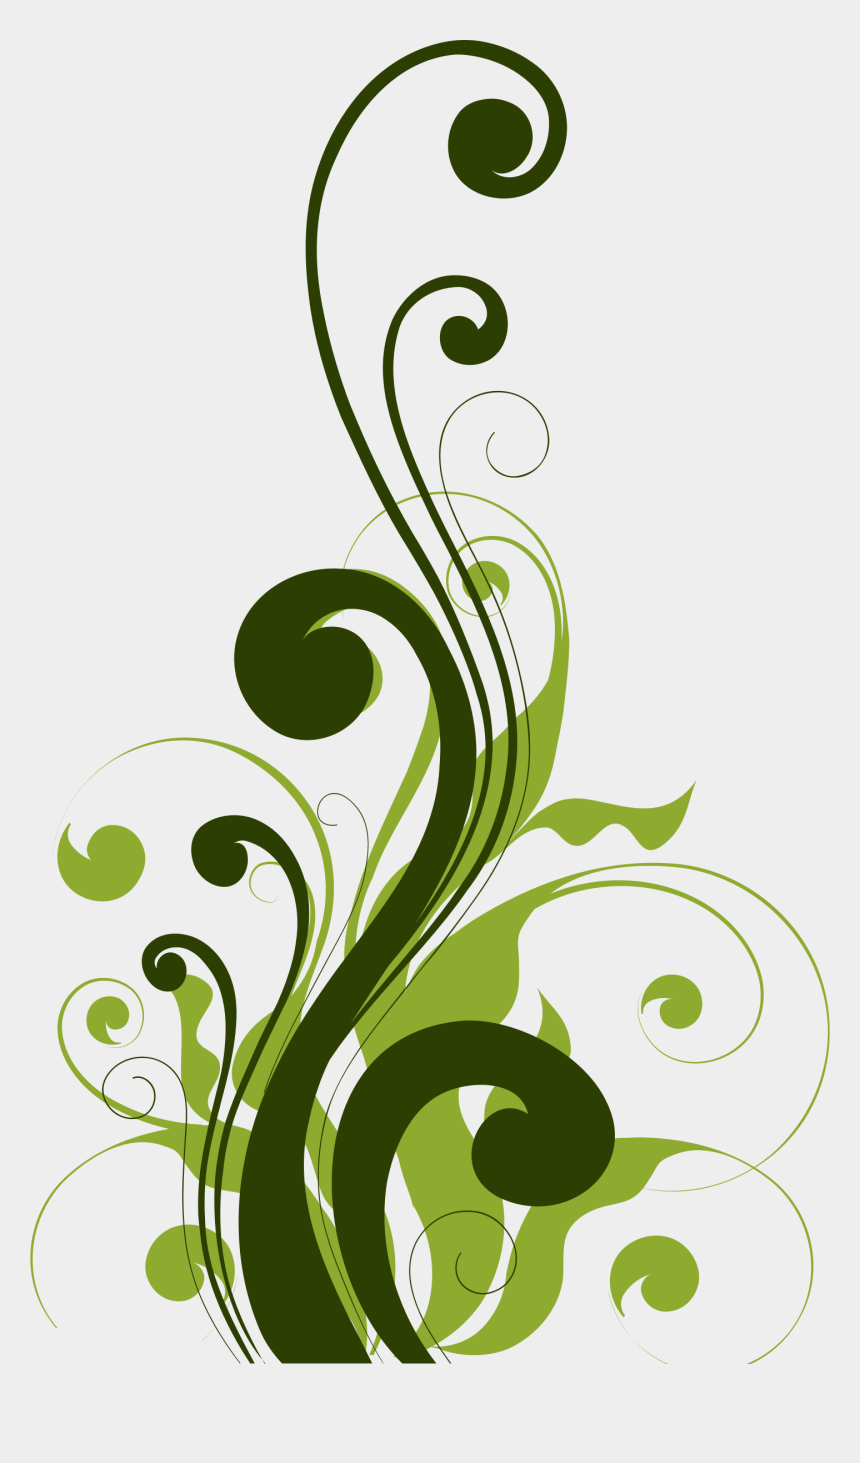 flourish clipart, Cartoons - Green Flourish Cliparts - Background Design For Scrapbook